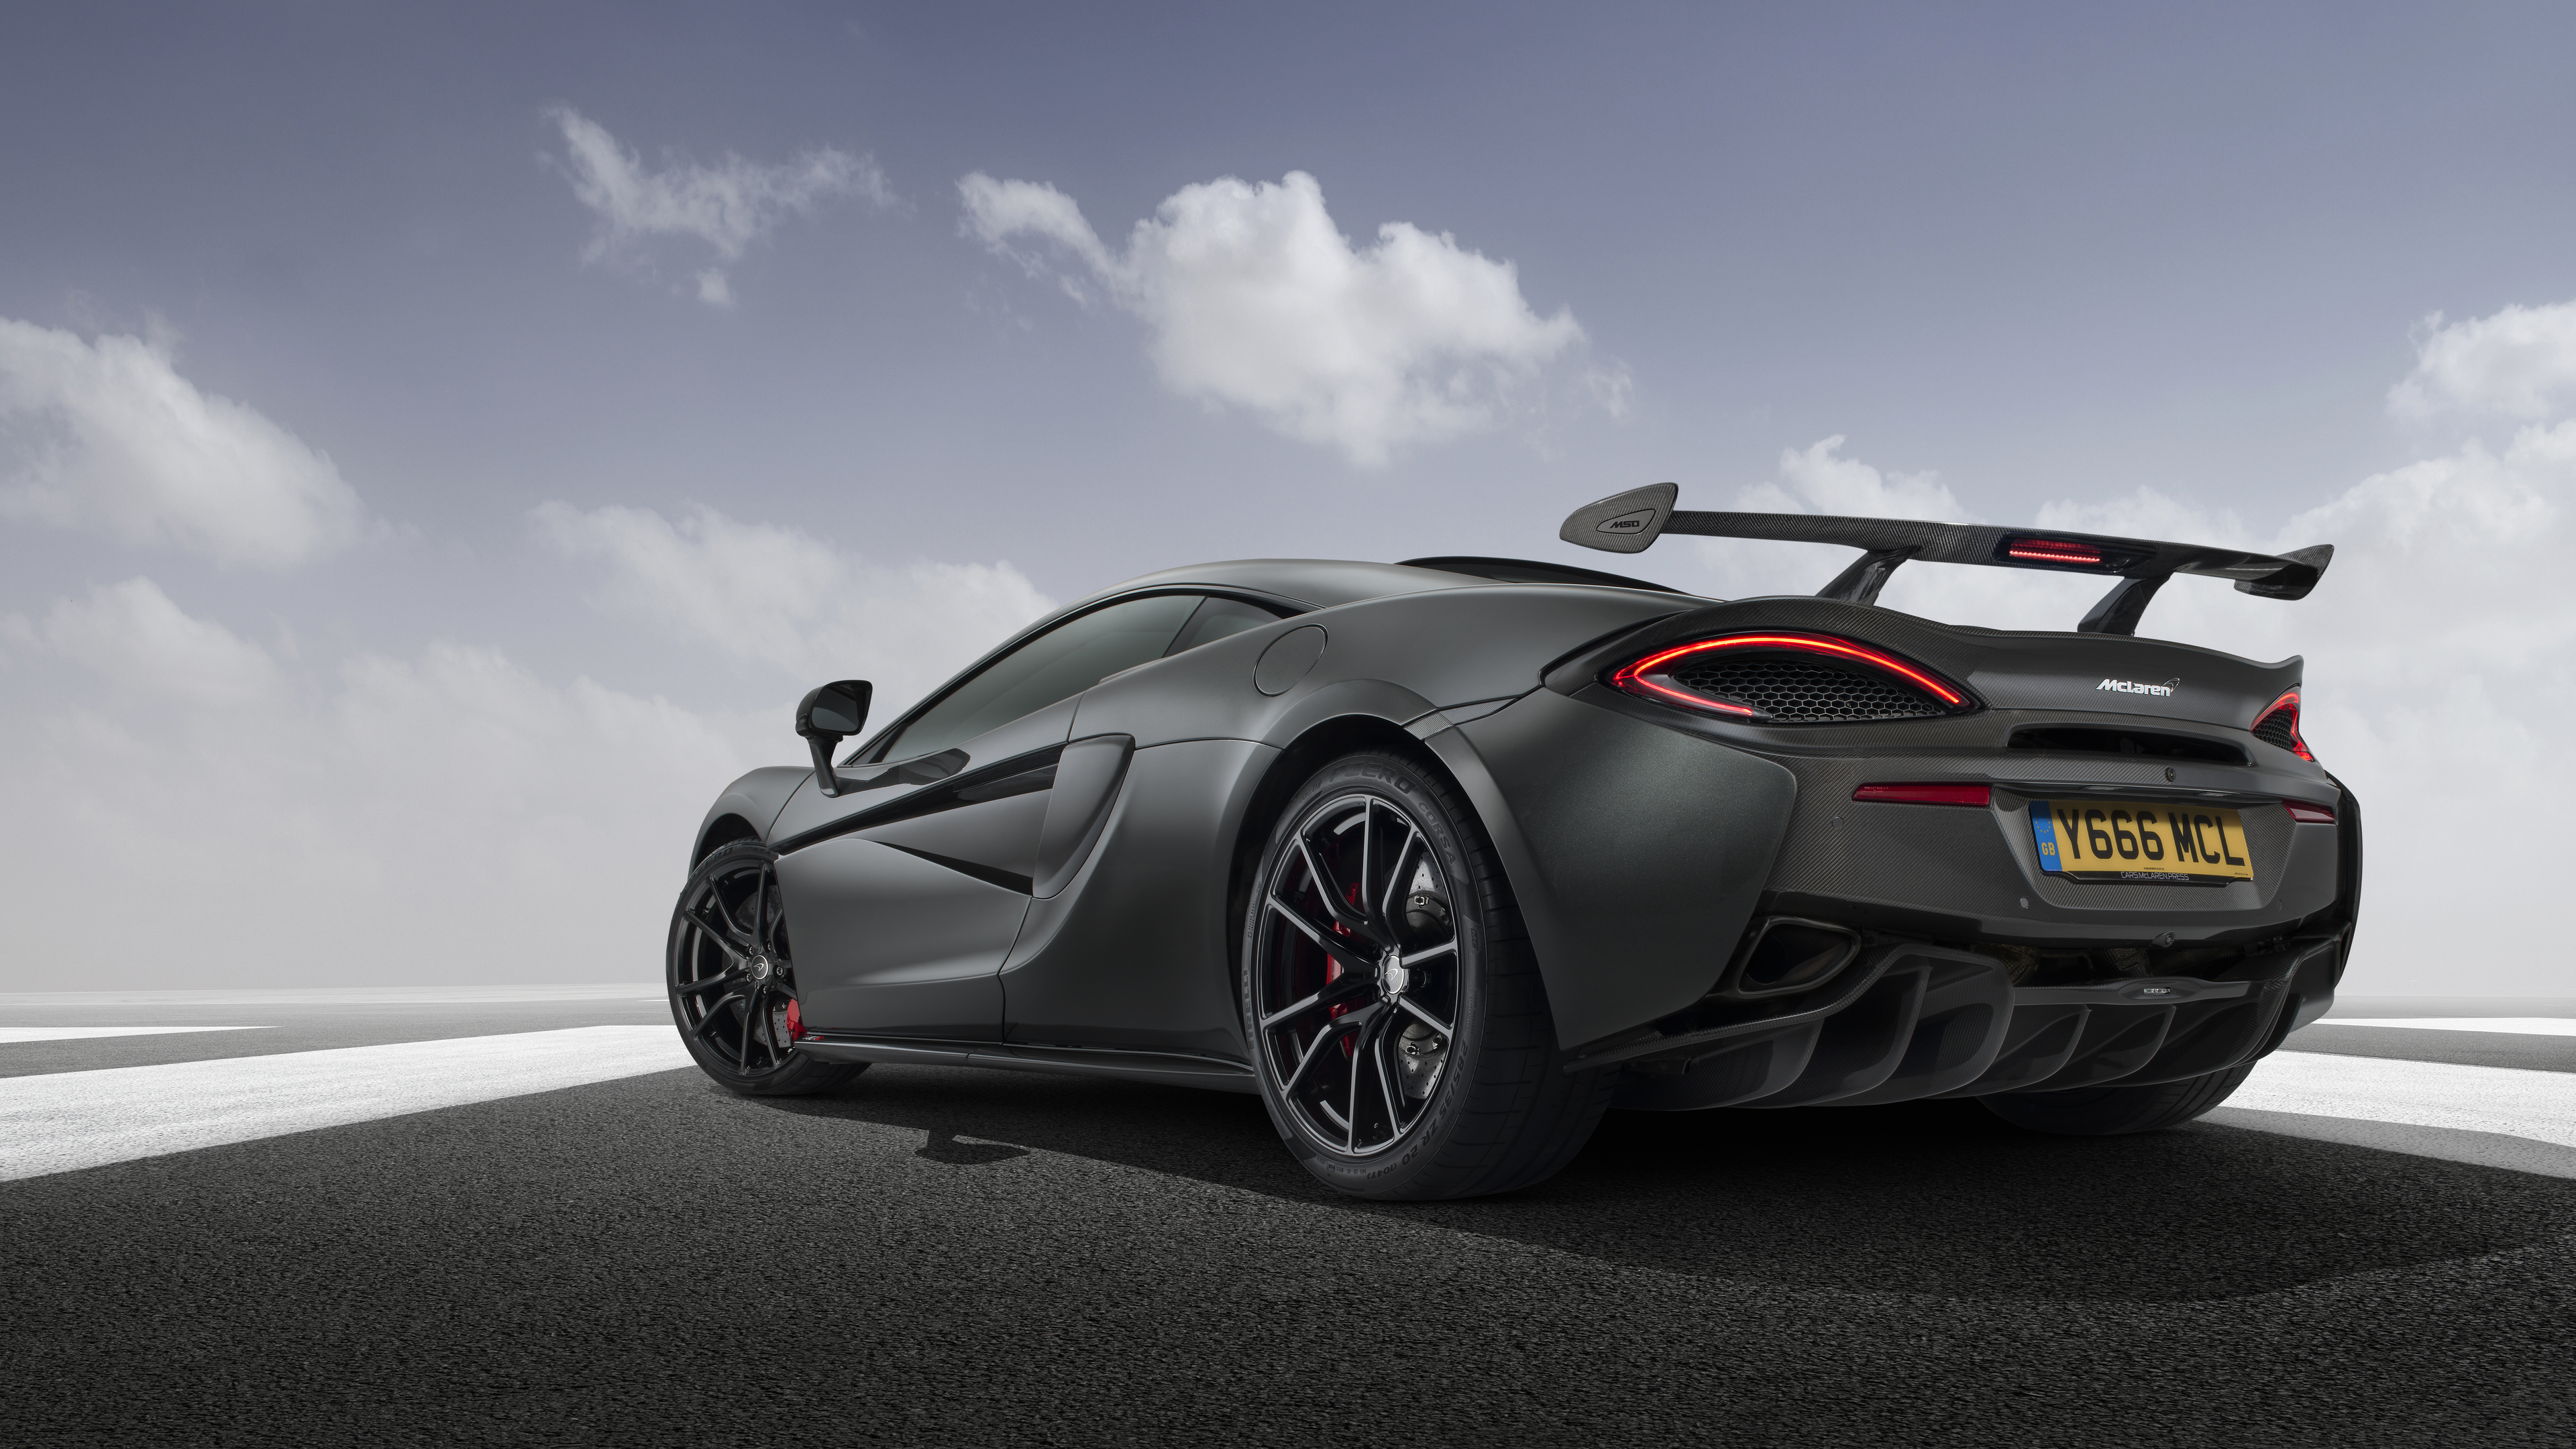 mso mclaren 570s coupe high downforce kit 2019 1560534367 - MSO McLaren 570S Coupe High Downforce Kit 2019 - mclaren wallpapers, mclaren 720s wallpapers, mclaren 570s spider wallpapers, hd-wallpapers, cars wallpapers, 4k-wallpapers, 2019 cars wallpapers